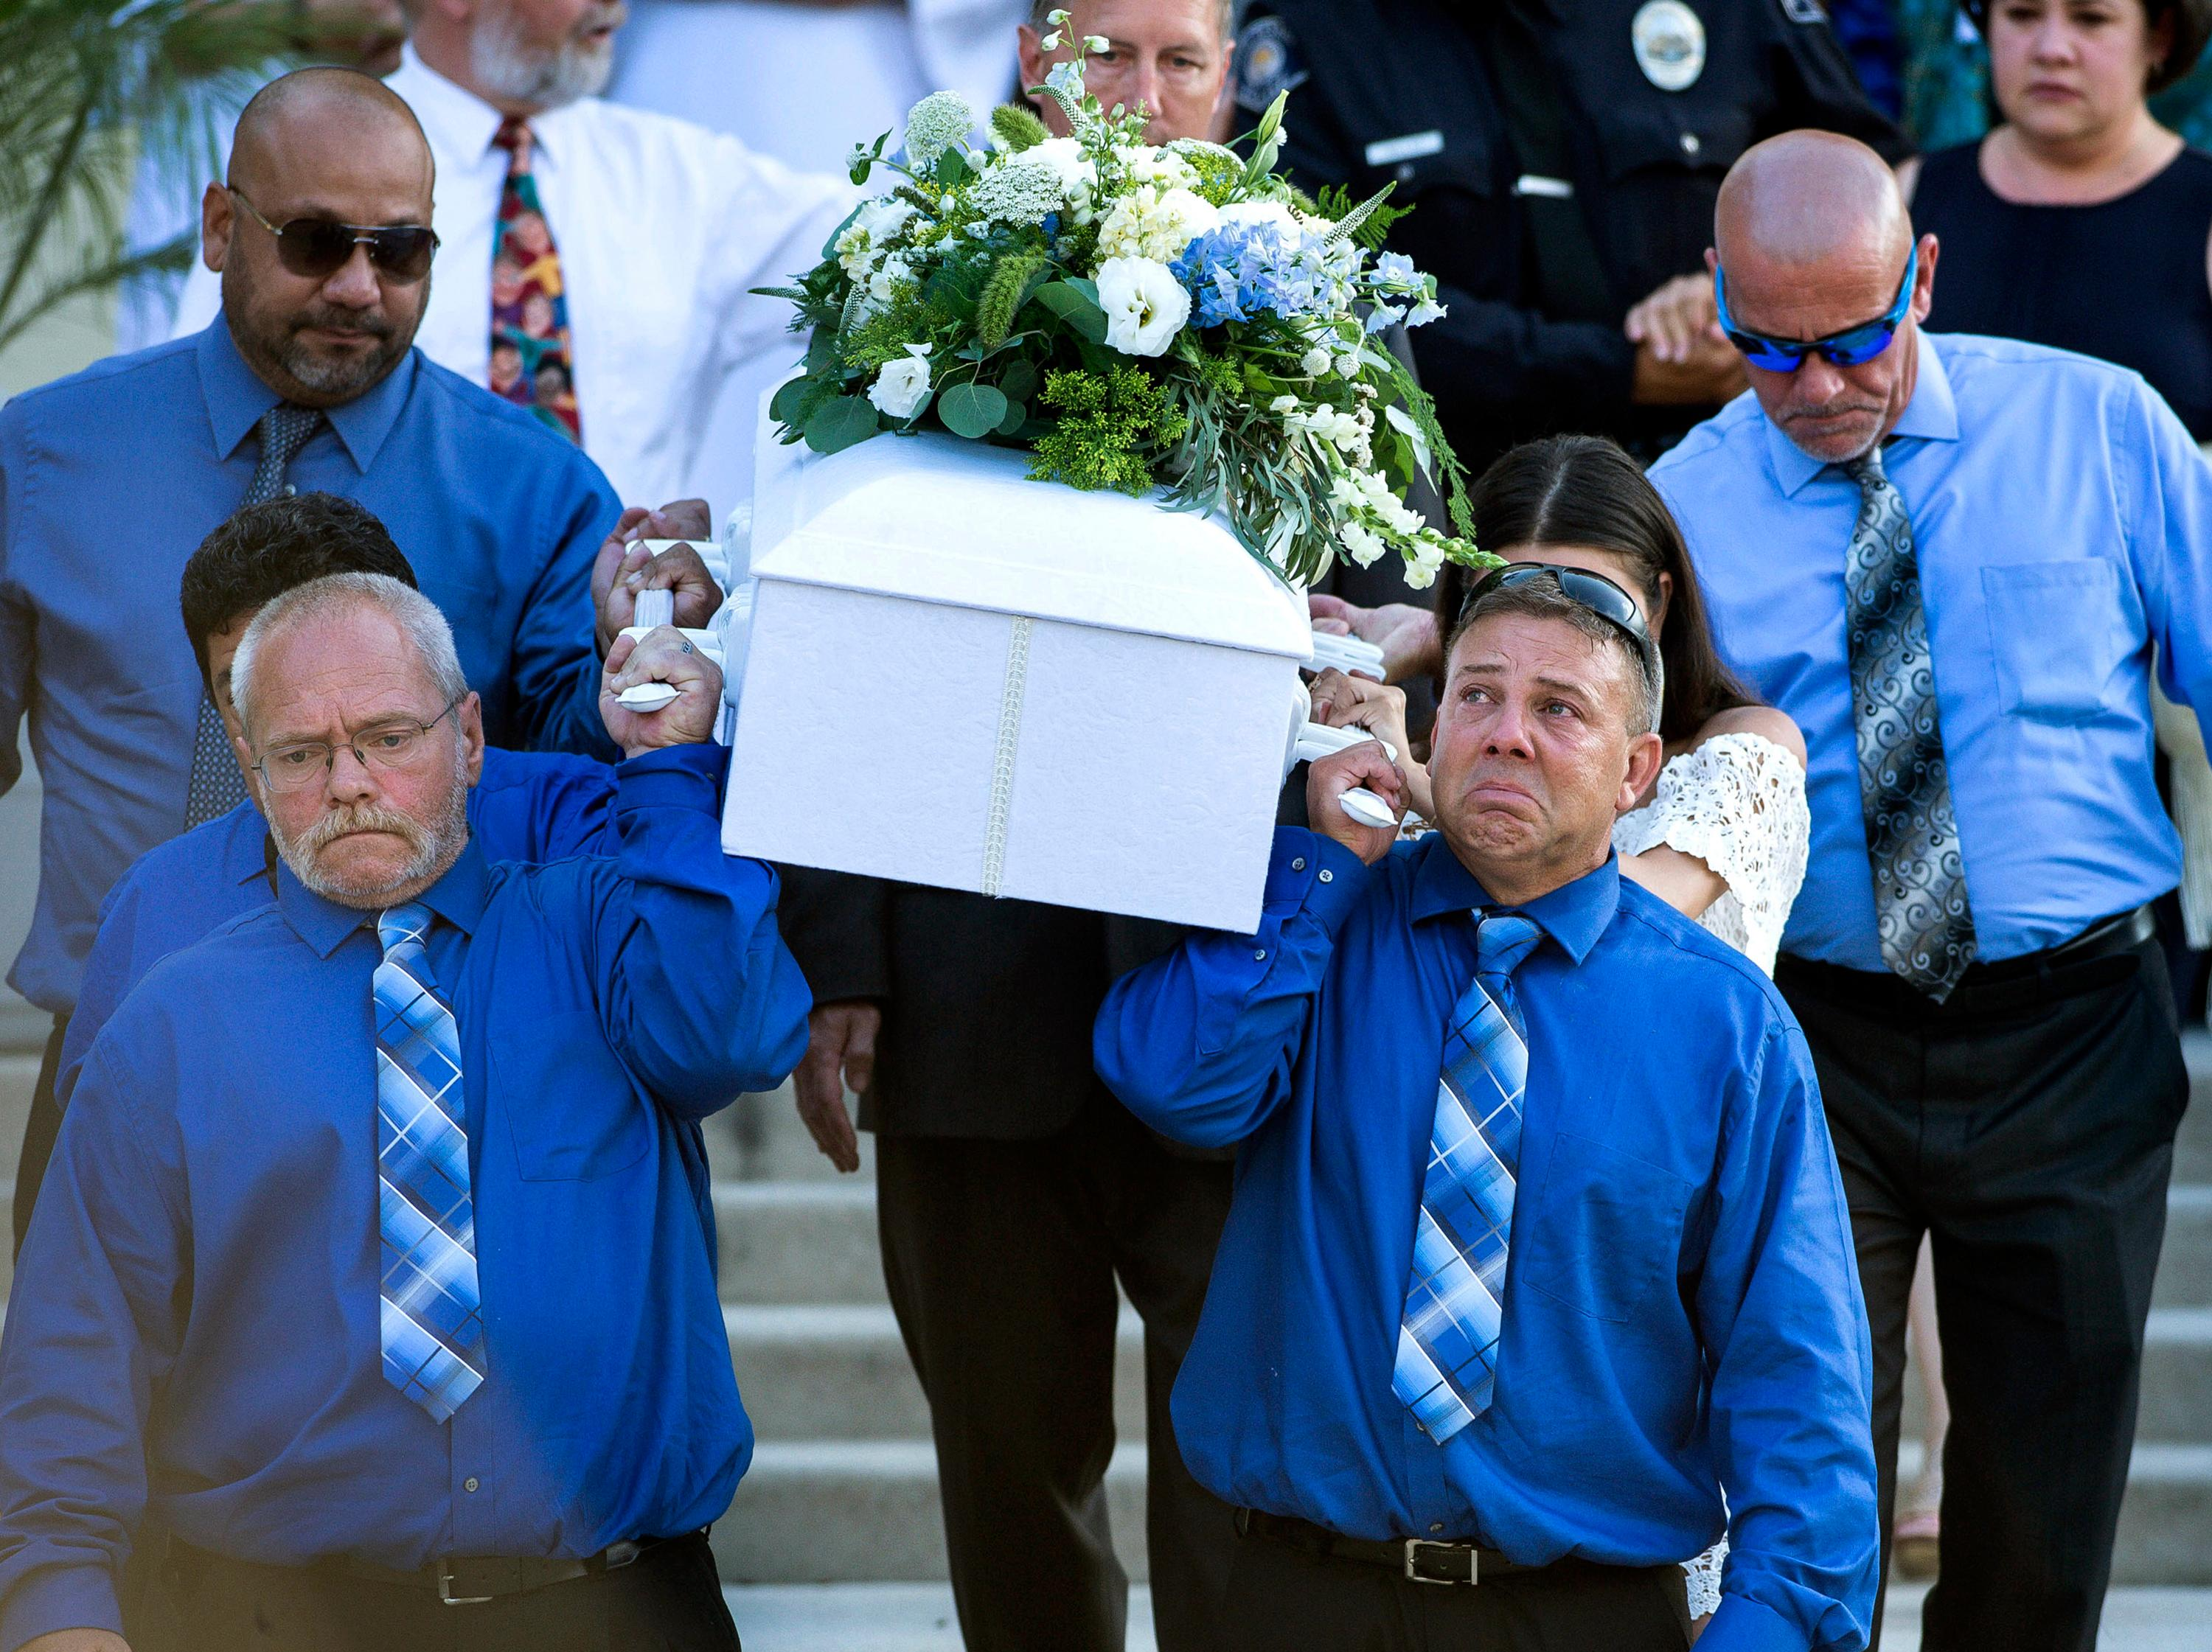 FILE - In this July 18, 2017, file photo, pallbearers carry the casket of Aramazd Andressian Jr. at his funeral at Holy Family Roman Catholic Church in South Pasadena, Calif.  (Sarah Reingewirtz /Los Angeles Daily News via AP, File)